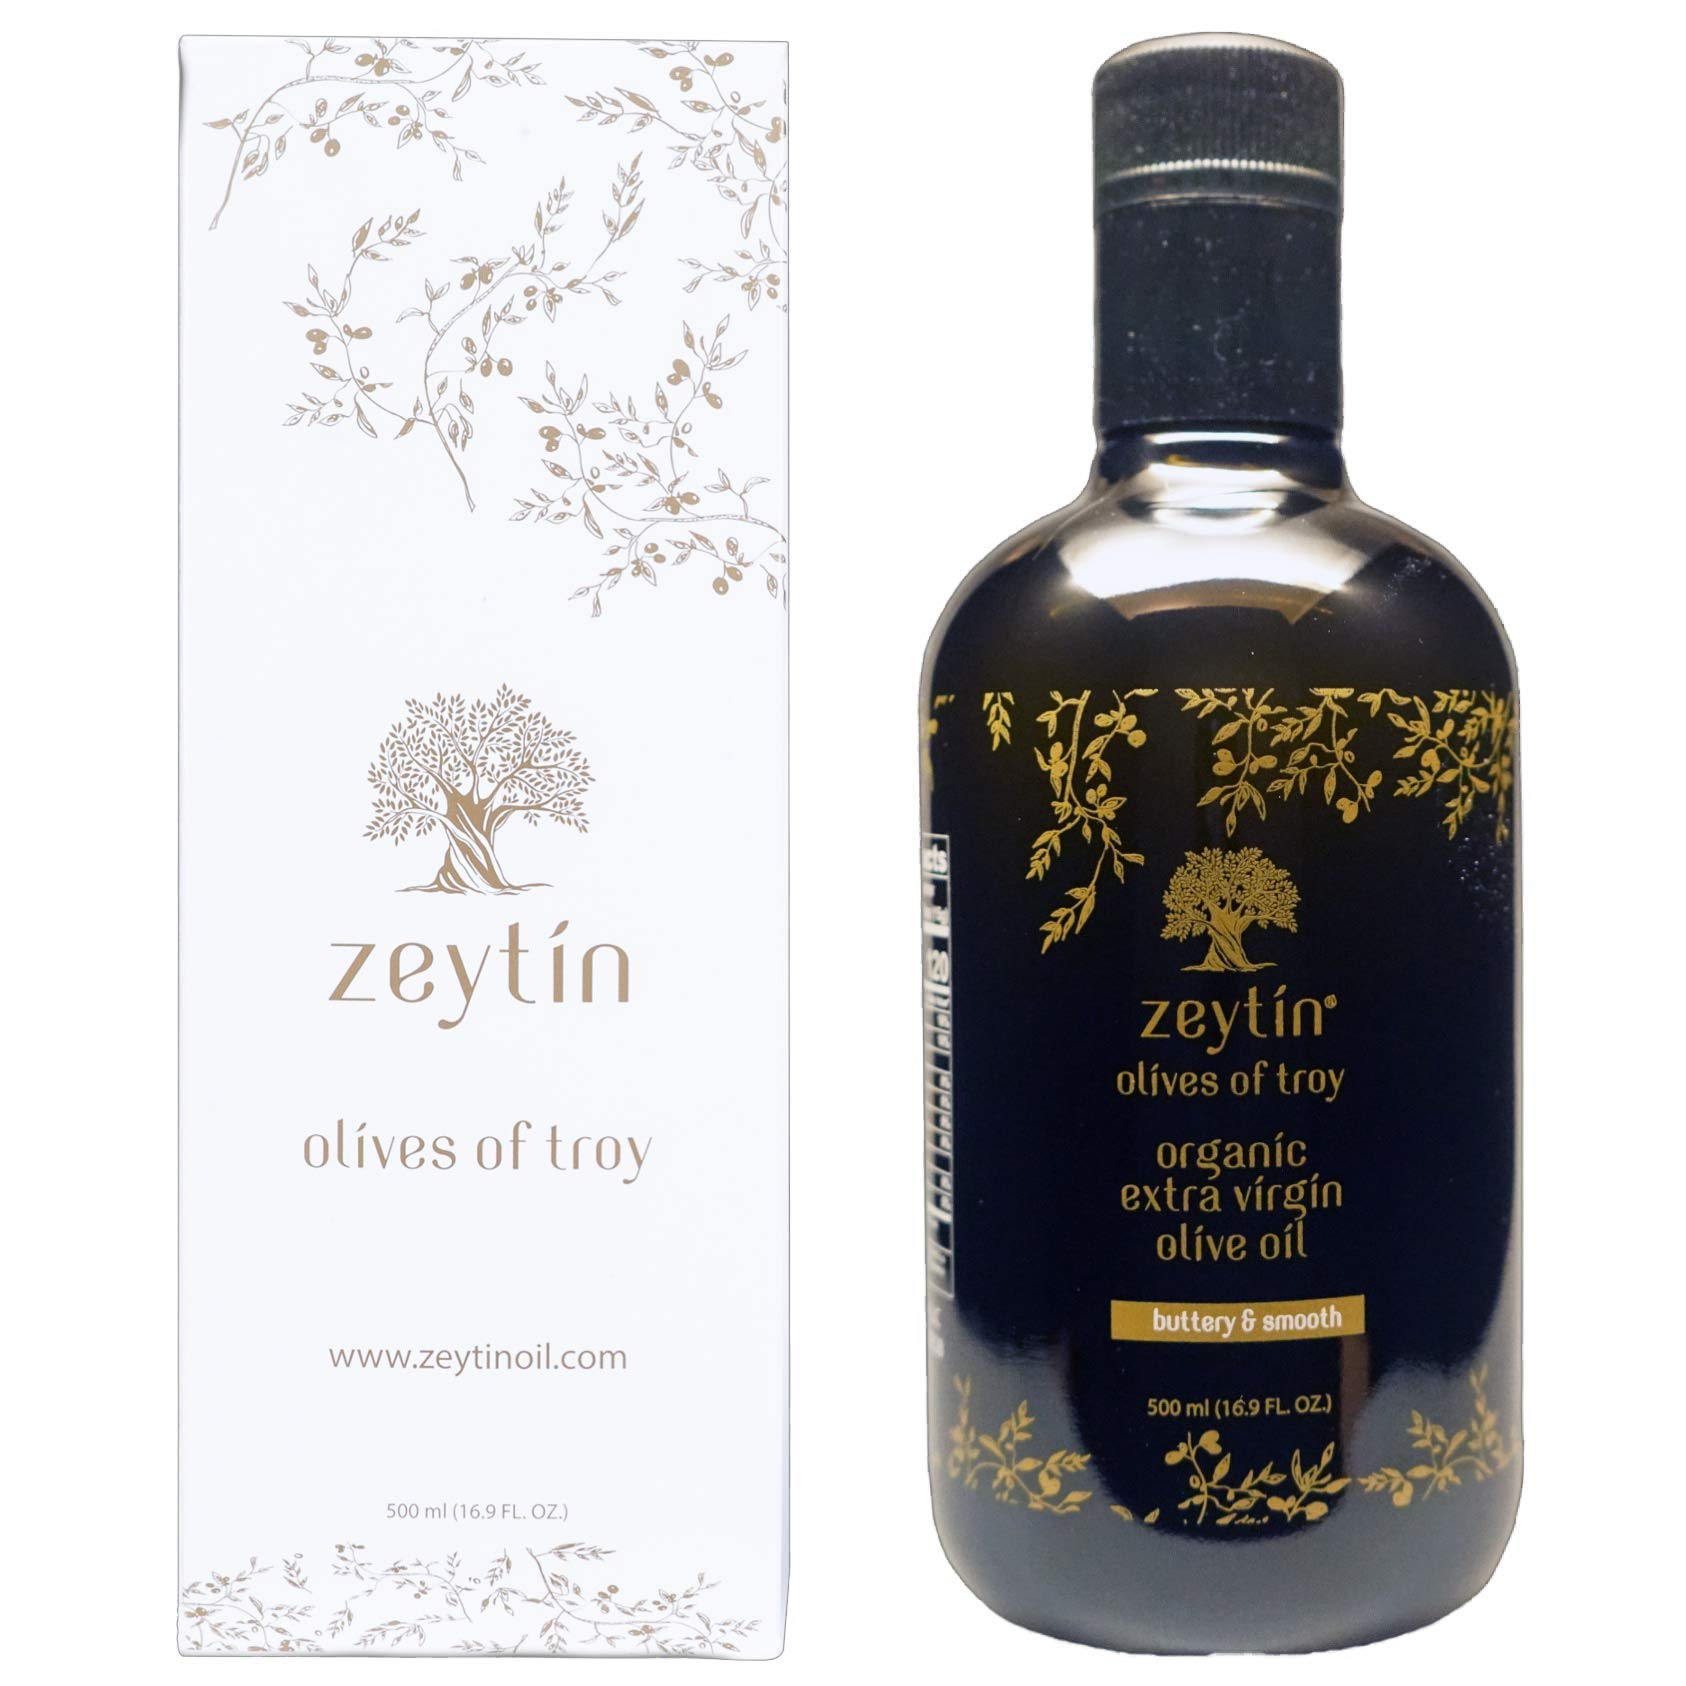 Zeytin Premium Extra Virgin Olive Oil - 2019 October Early-Harvest I Award Winning I PDO I Certified Organic I Cold Pressed I Single-Source I VEGAN & KETO (Buttery & Smooth, 500 ml (16.9 oz)